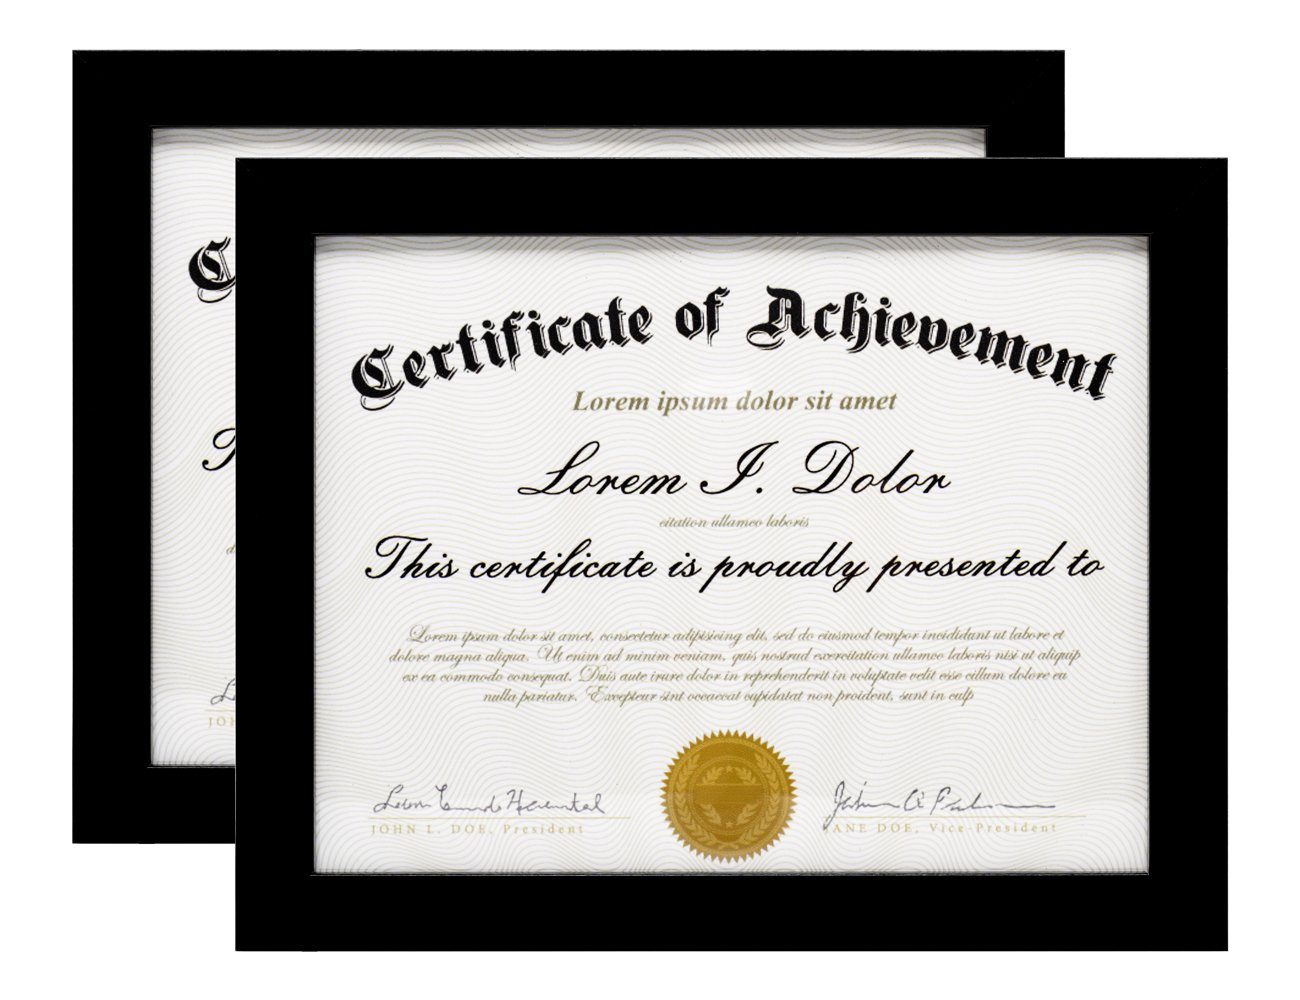 MeiC 2 Pack Document Frame - Made to Display Certificates 8.5x11 Inch - Document Frames, Certificate Frames, Standard Paper Frame Black